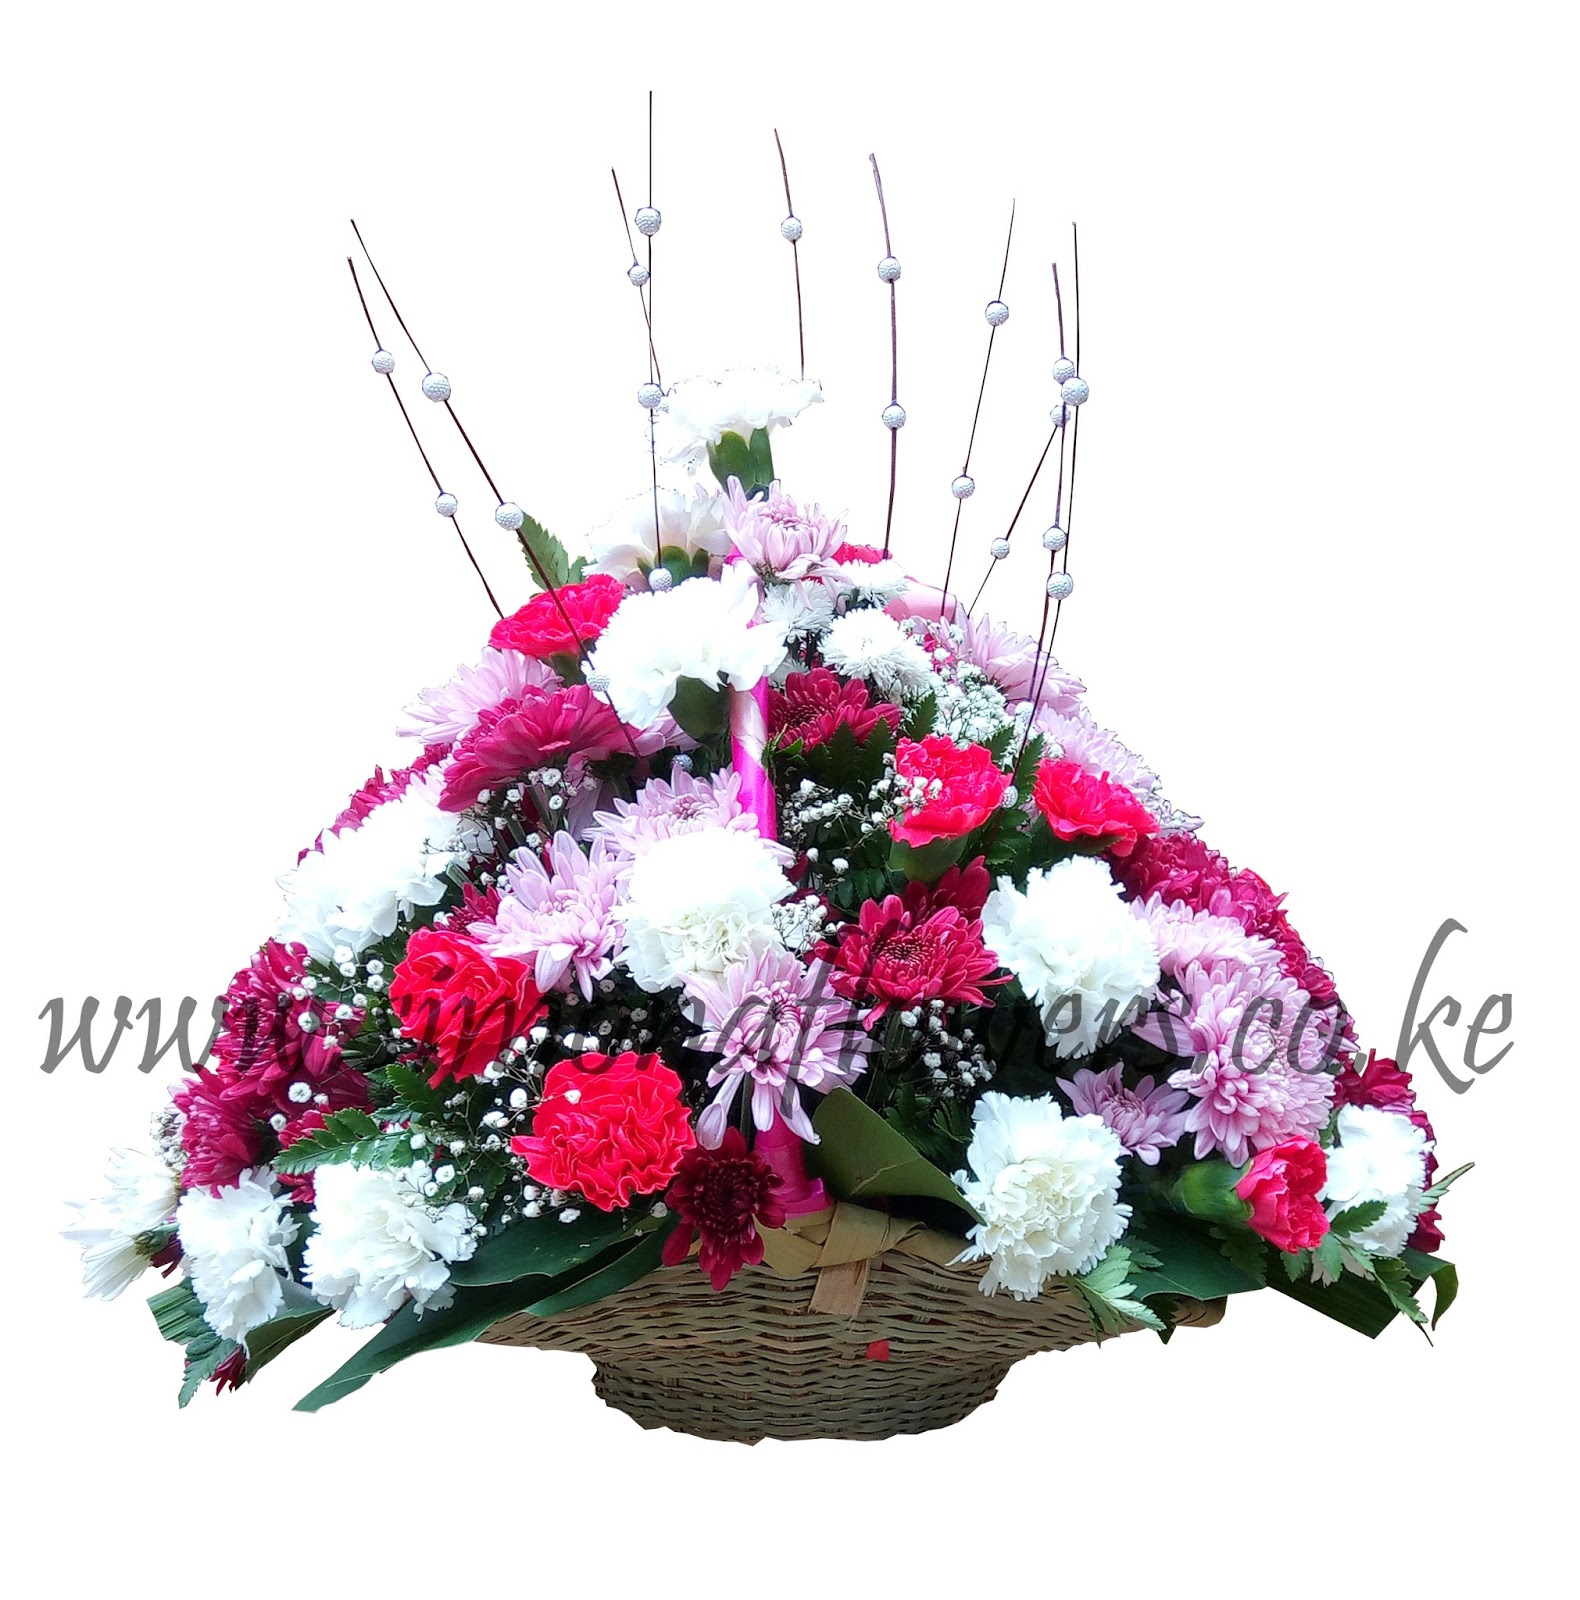 Simona flowers february 2018 we simona flowers nairobi kenya pride ourselves with an enviable quality flowers online with over a million bouquets delivered to date izmirmasajfo